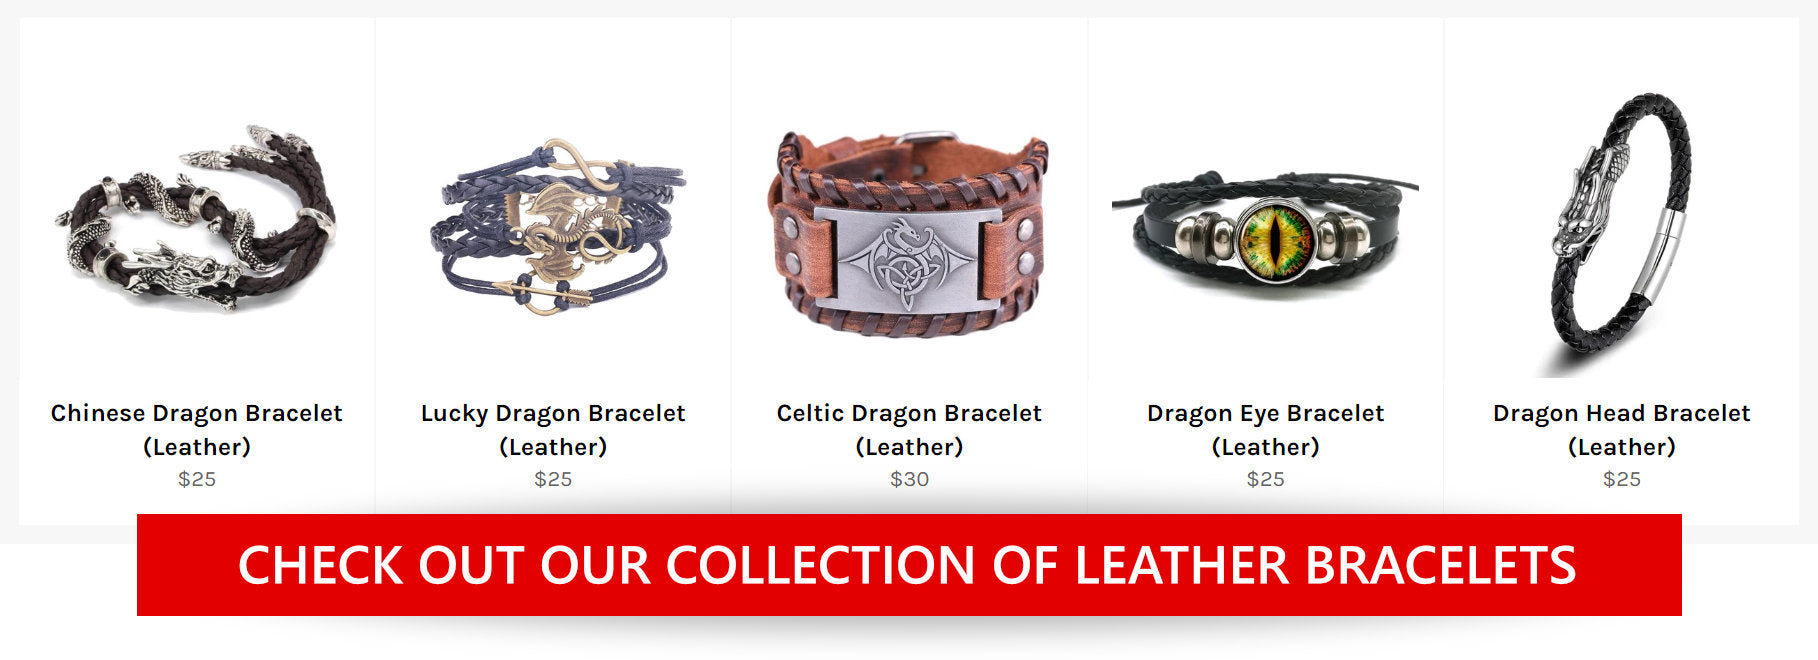 Our collection of Leather Dragon Bracelets